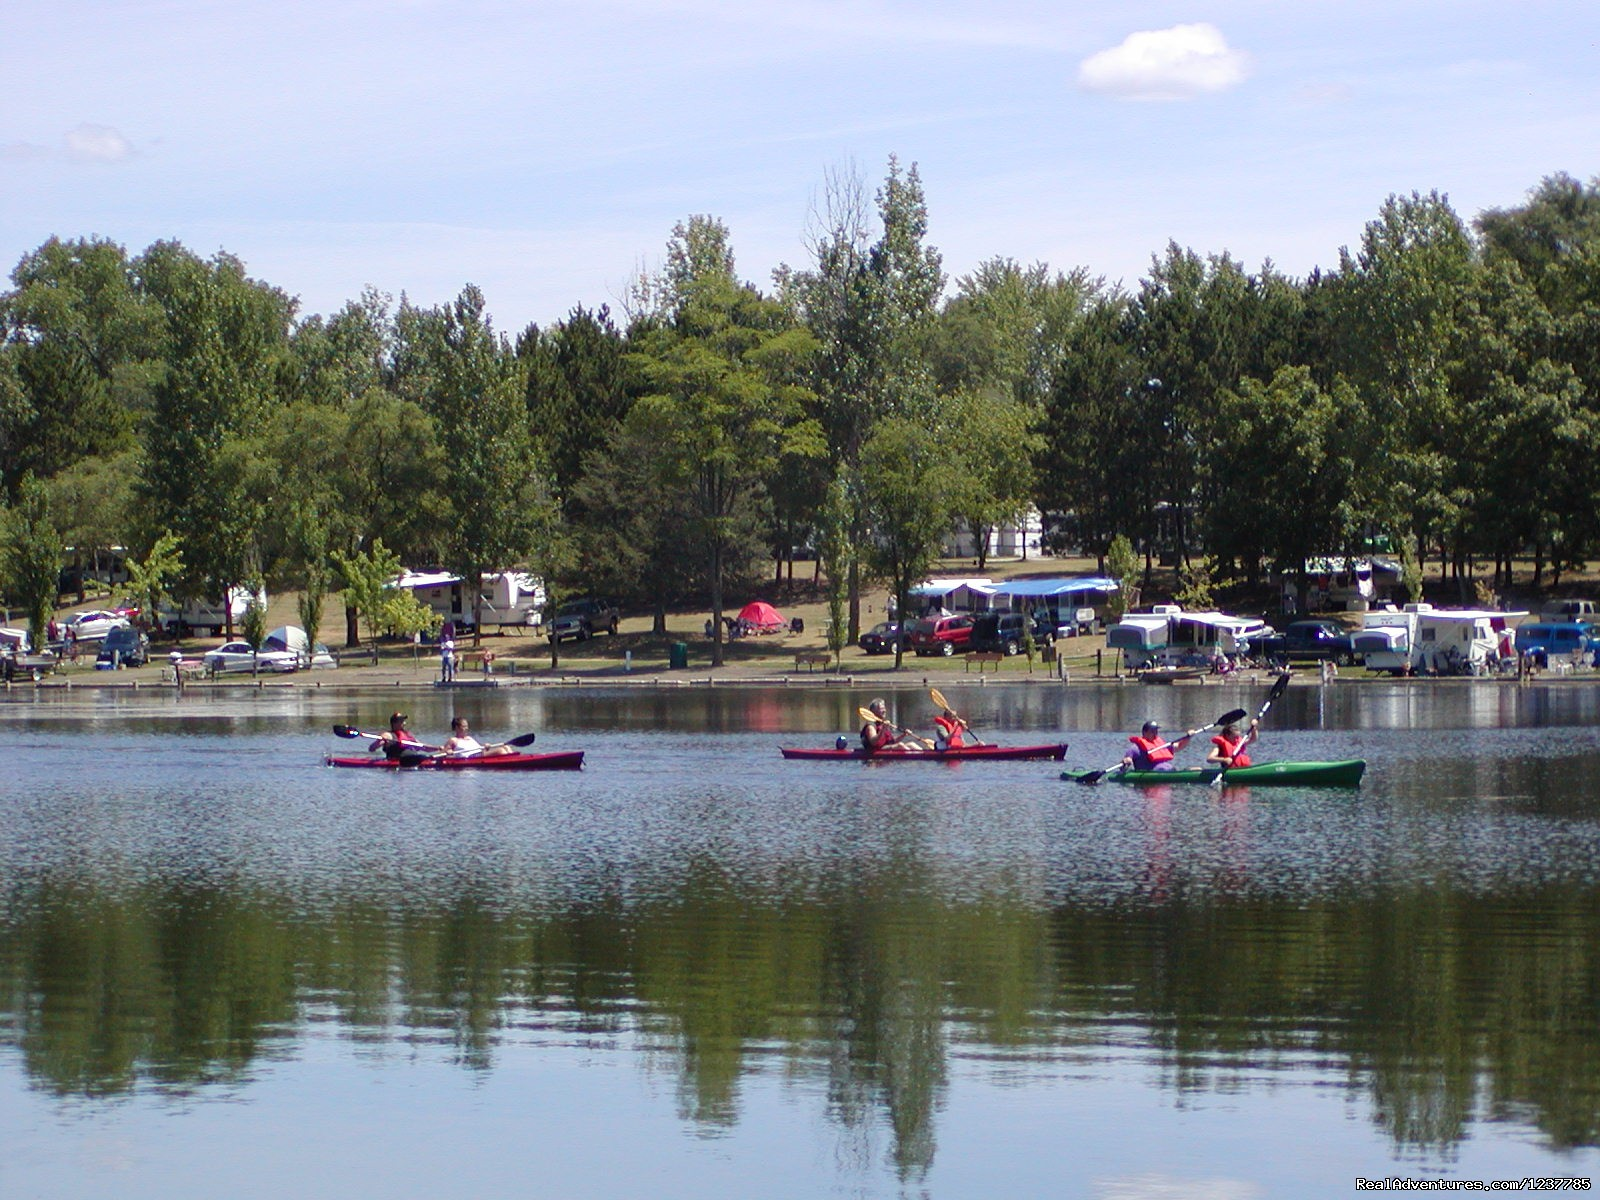 Rent Canoes, kayaks, Rowboats and Paddleboats